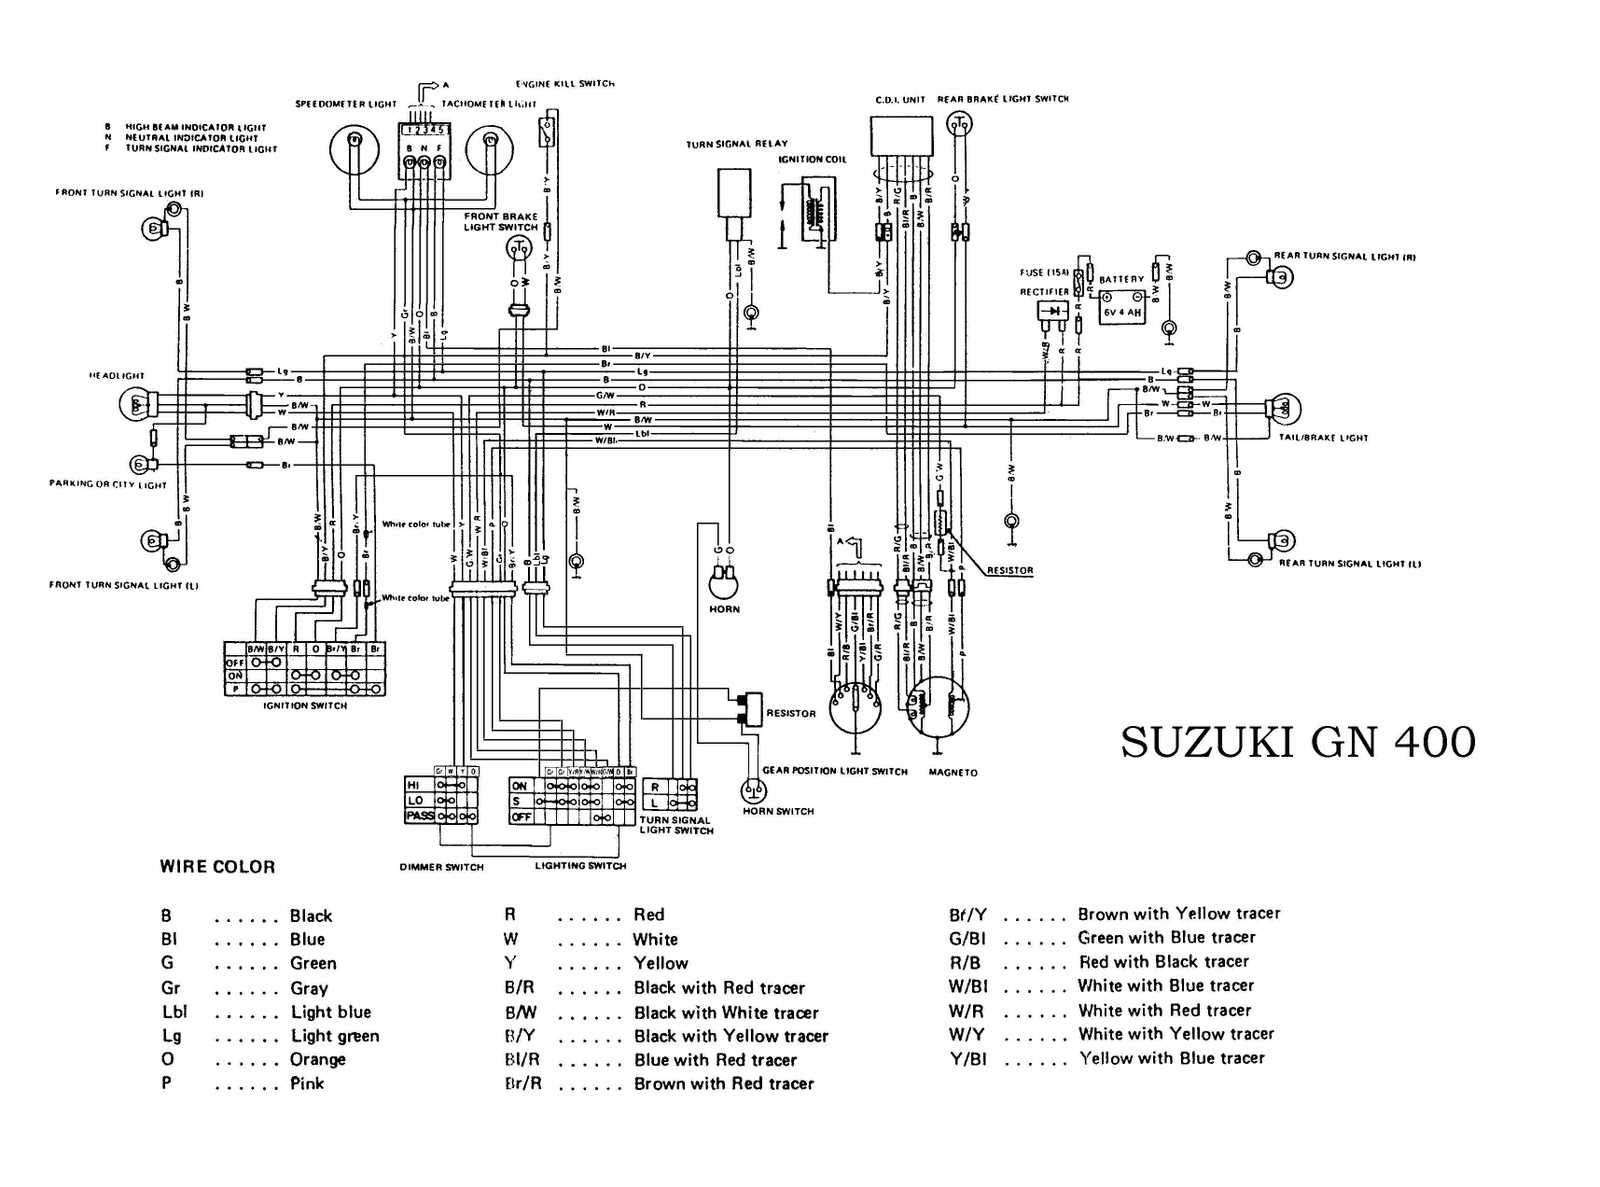 onan marquis generator parts diagrams with Black And Red Suzuki Motorcycle on T23970007 Spark plug gap 2700 watt ryobi generator further Black And Red Suzuki Motorcycle likewise Onan Cck Wiring Diagram as well Onan Carburetor Parts Diagram furthermore Onan Generator Emerald 1 Genset Wiring Diagram.